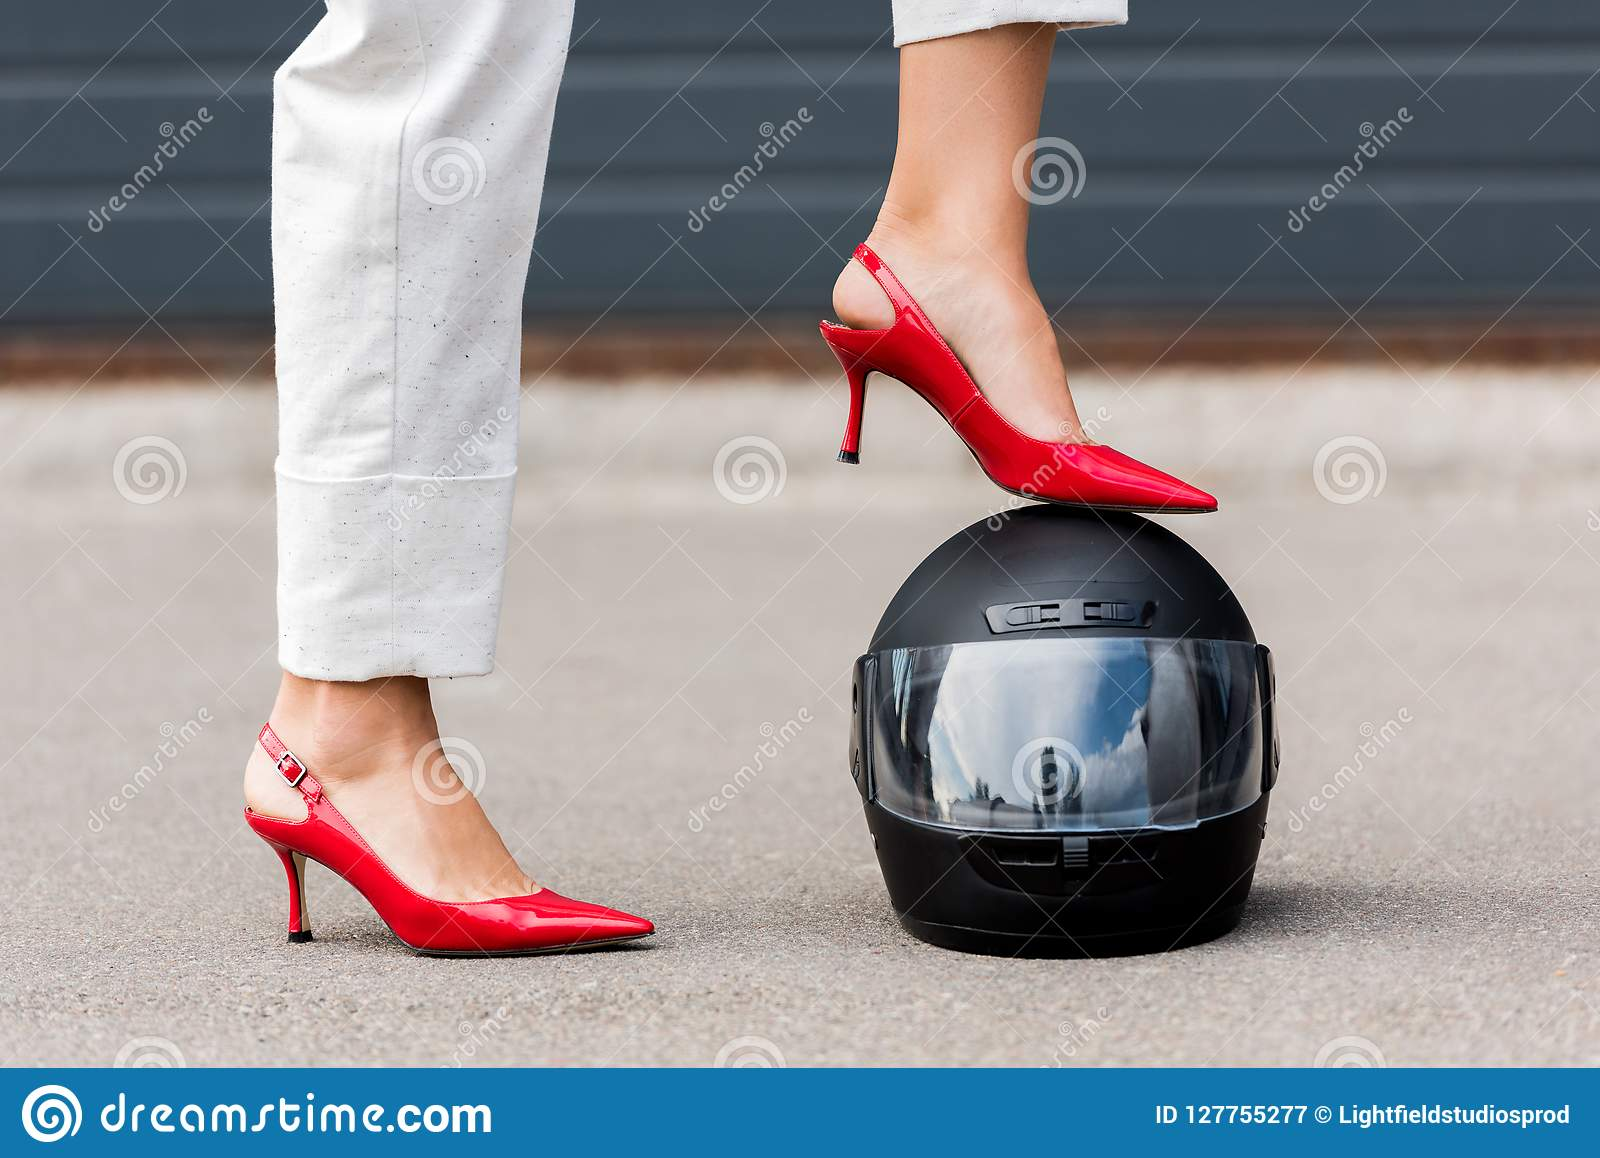 cropped image of woman in red high heels putting leg on motorcycle helmet on street